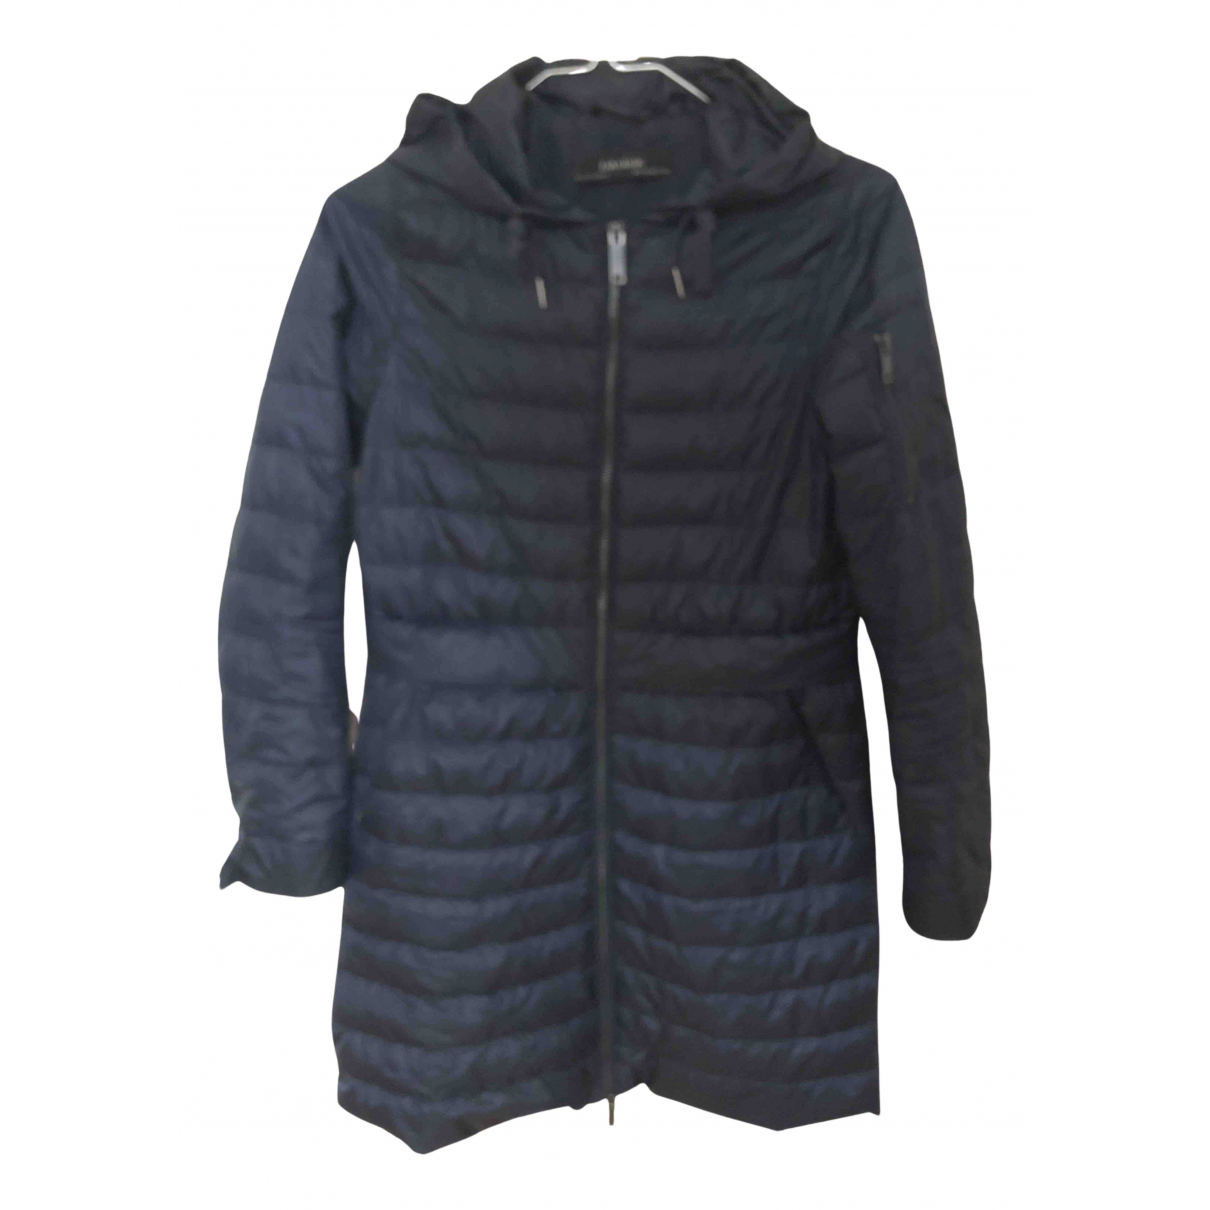 Zara N Navy jacket for Women XS International